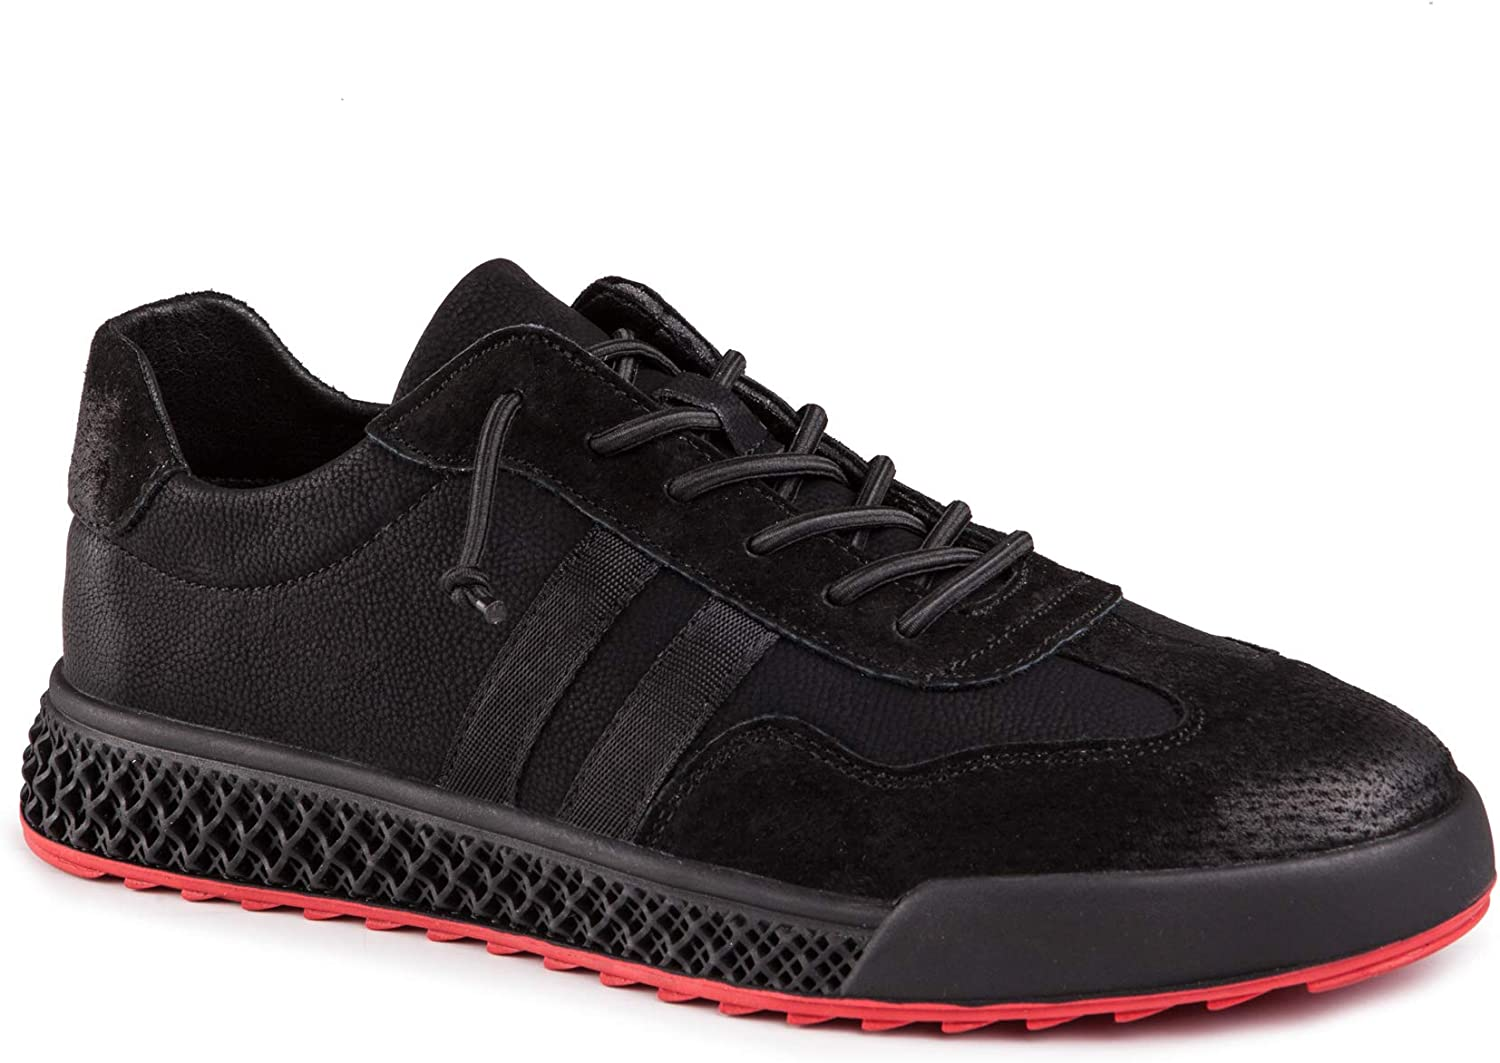 Black Comfy Casual Lace Up Shoes Wear